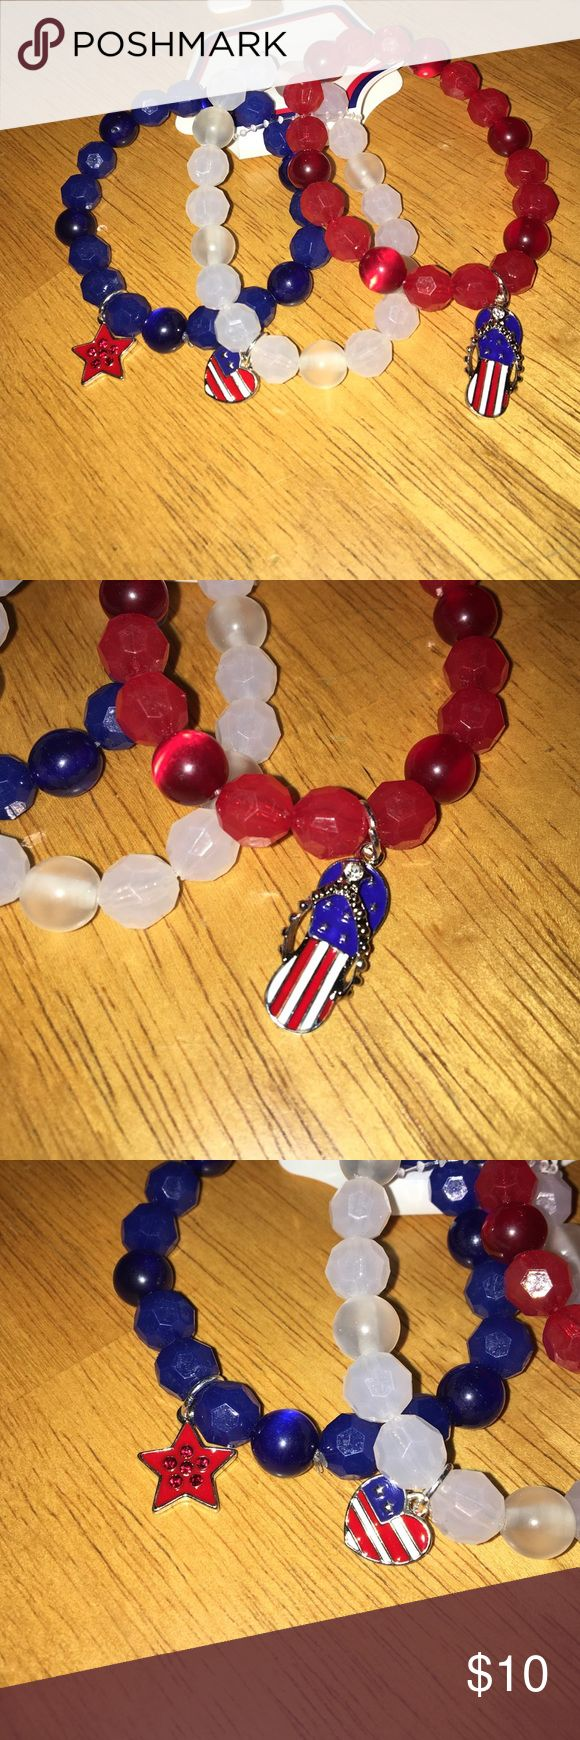 Set of 3 red, white, and blue bracelets American flag 🇺🇸 flip flop, heart, and star charms on red, white, and blue beaded stretch bracelets. Set of 3. no brand Jewelry Bracelets